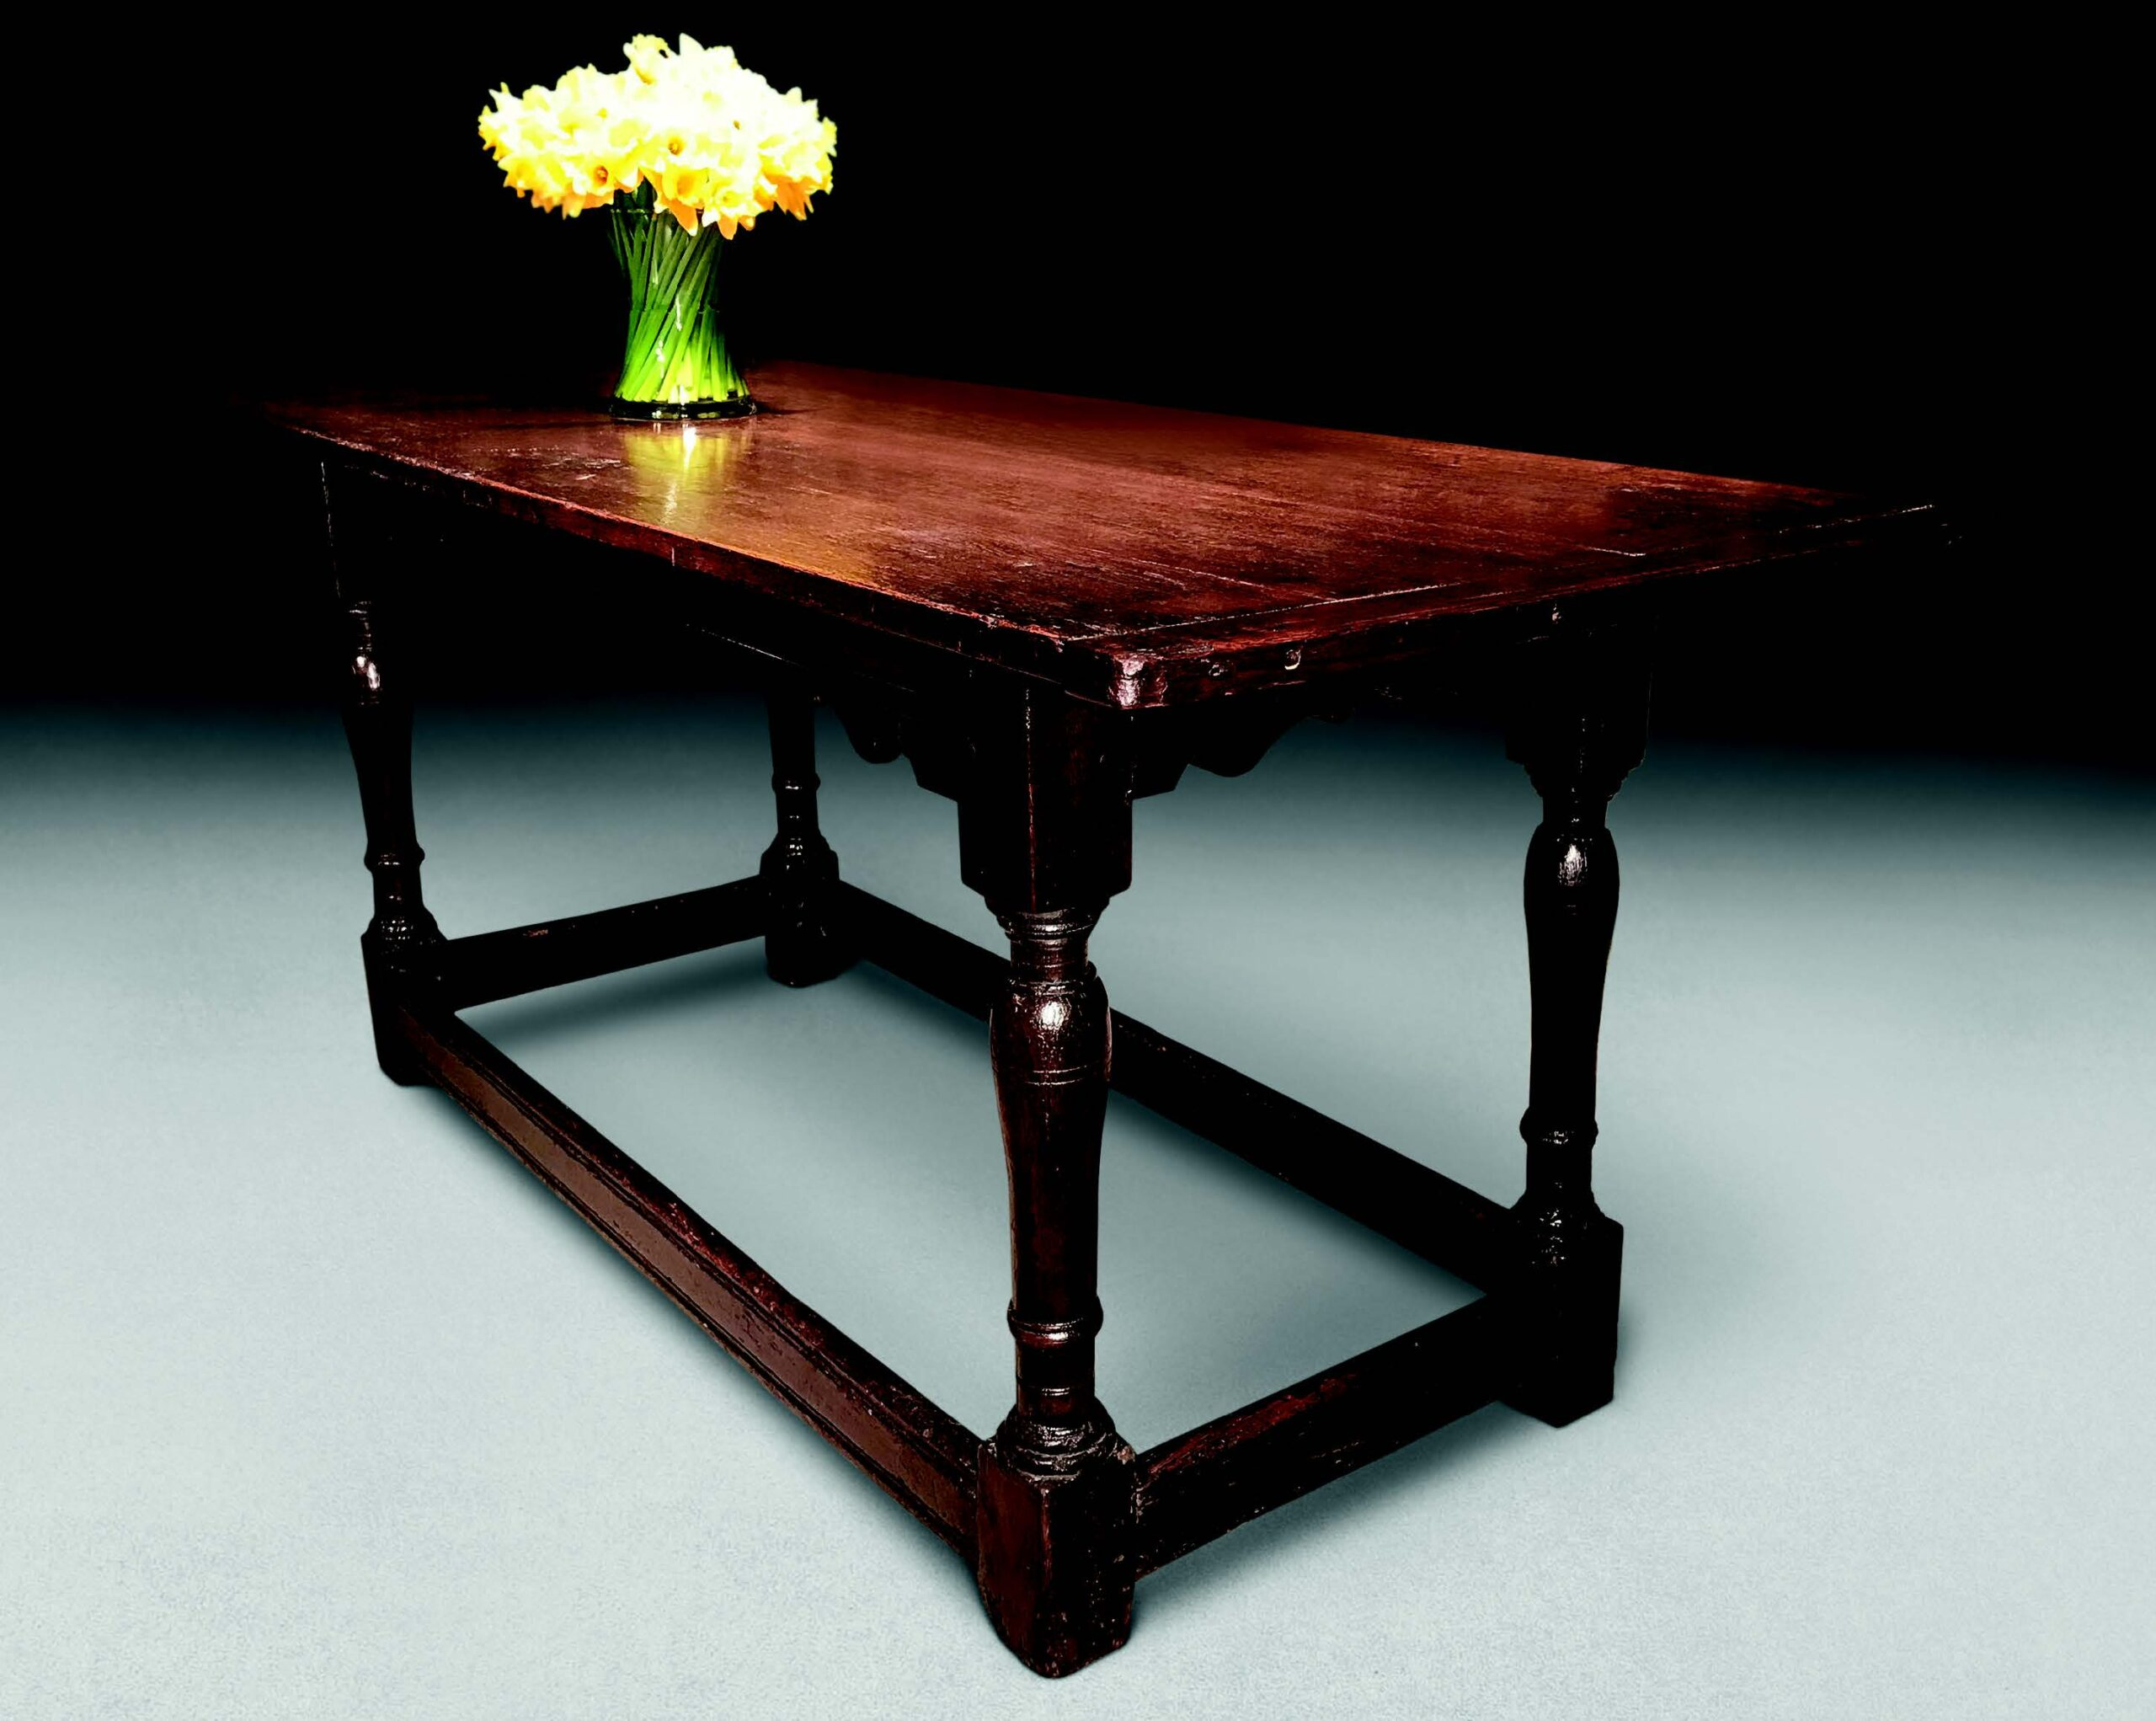 A Late 17th-century oak refectory table